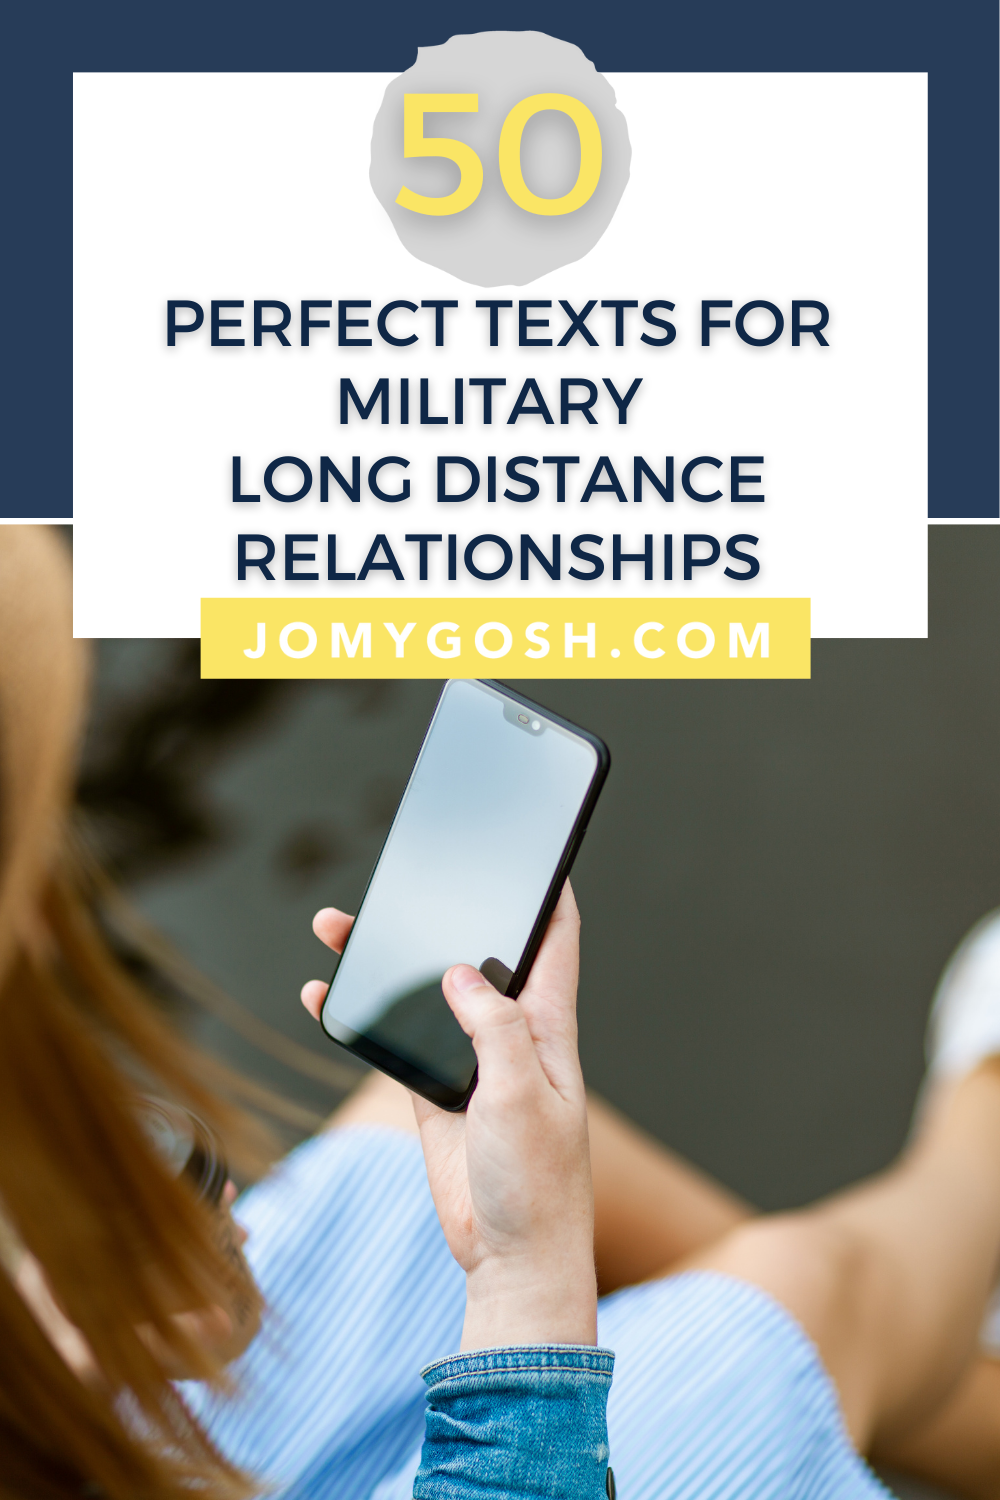 Copy and paste these text message ideas to connect with your partner. #longdistance #ldr #ldrcouples #military #militarycouples